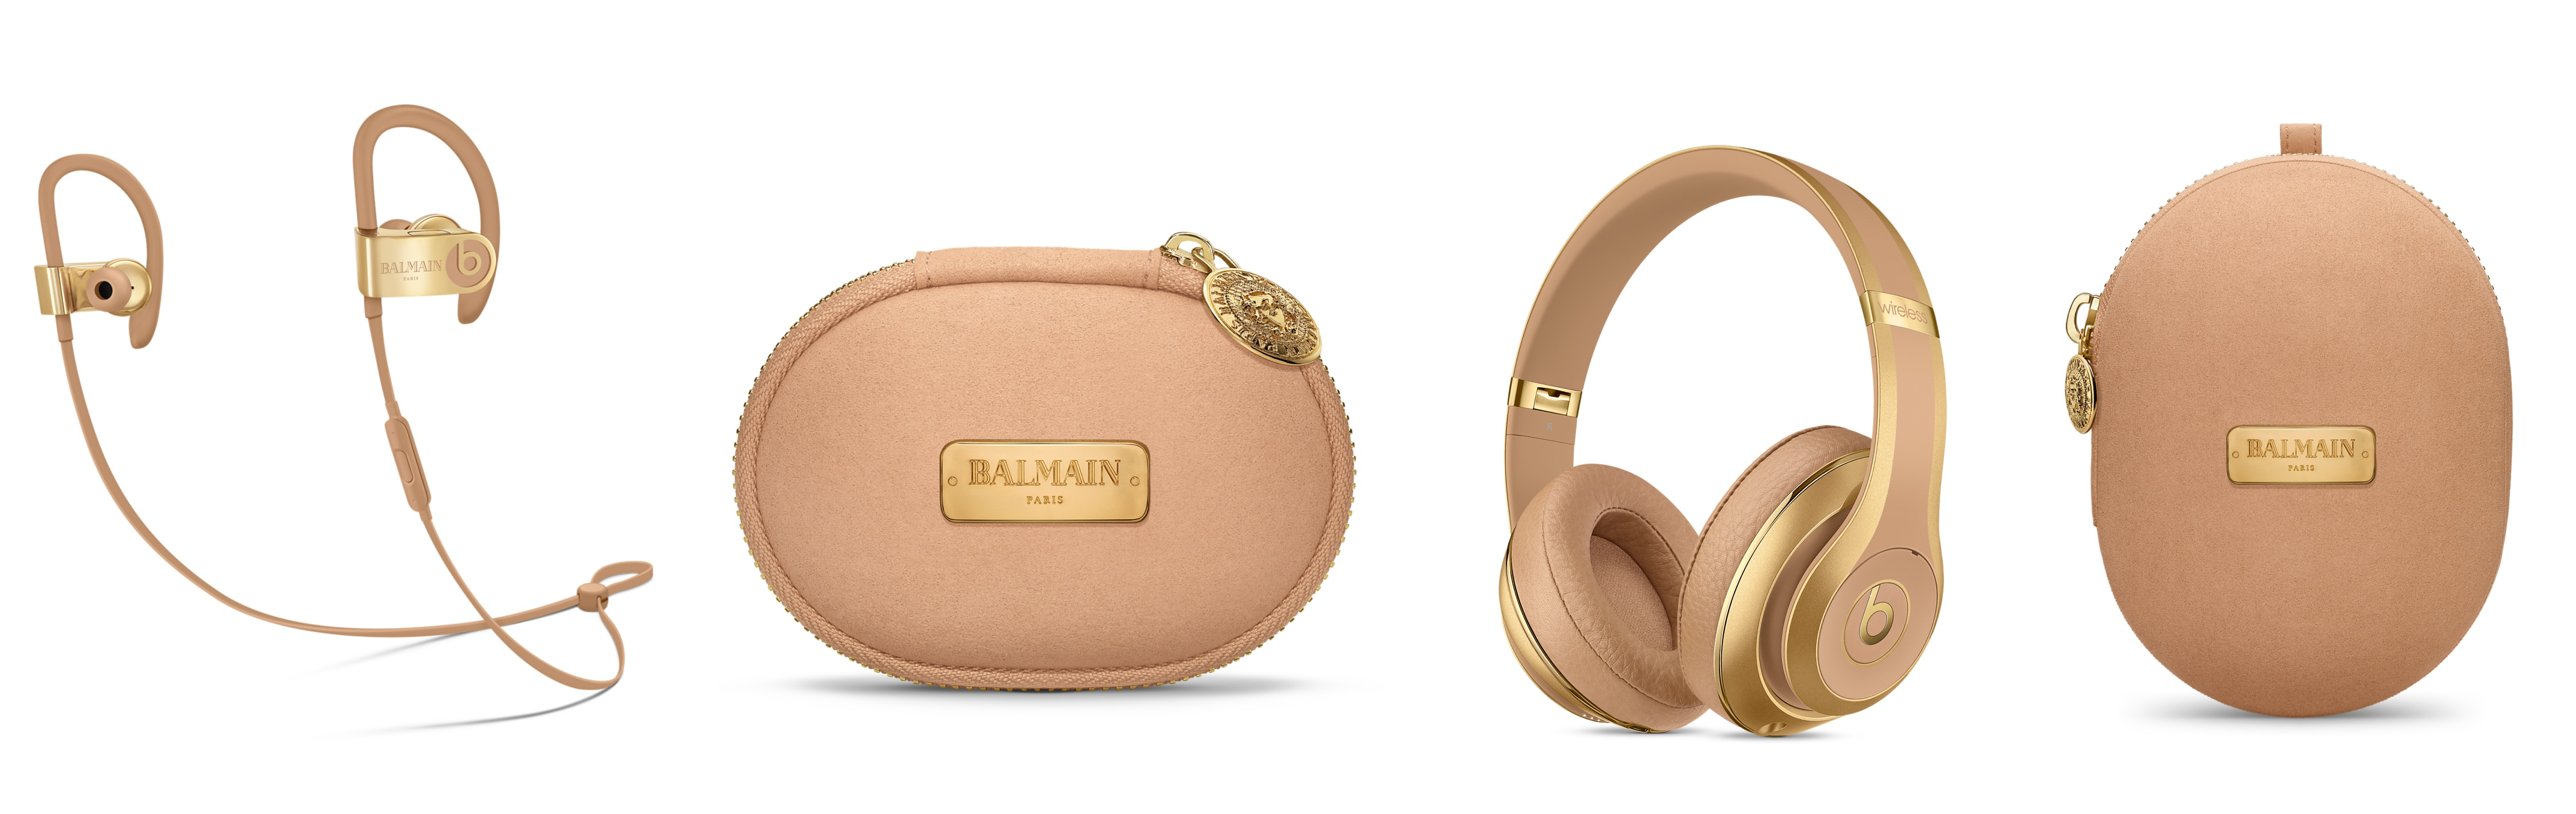 1d4719cc212 Apple launches special edition Beats with designer Balmain & Kylie ...